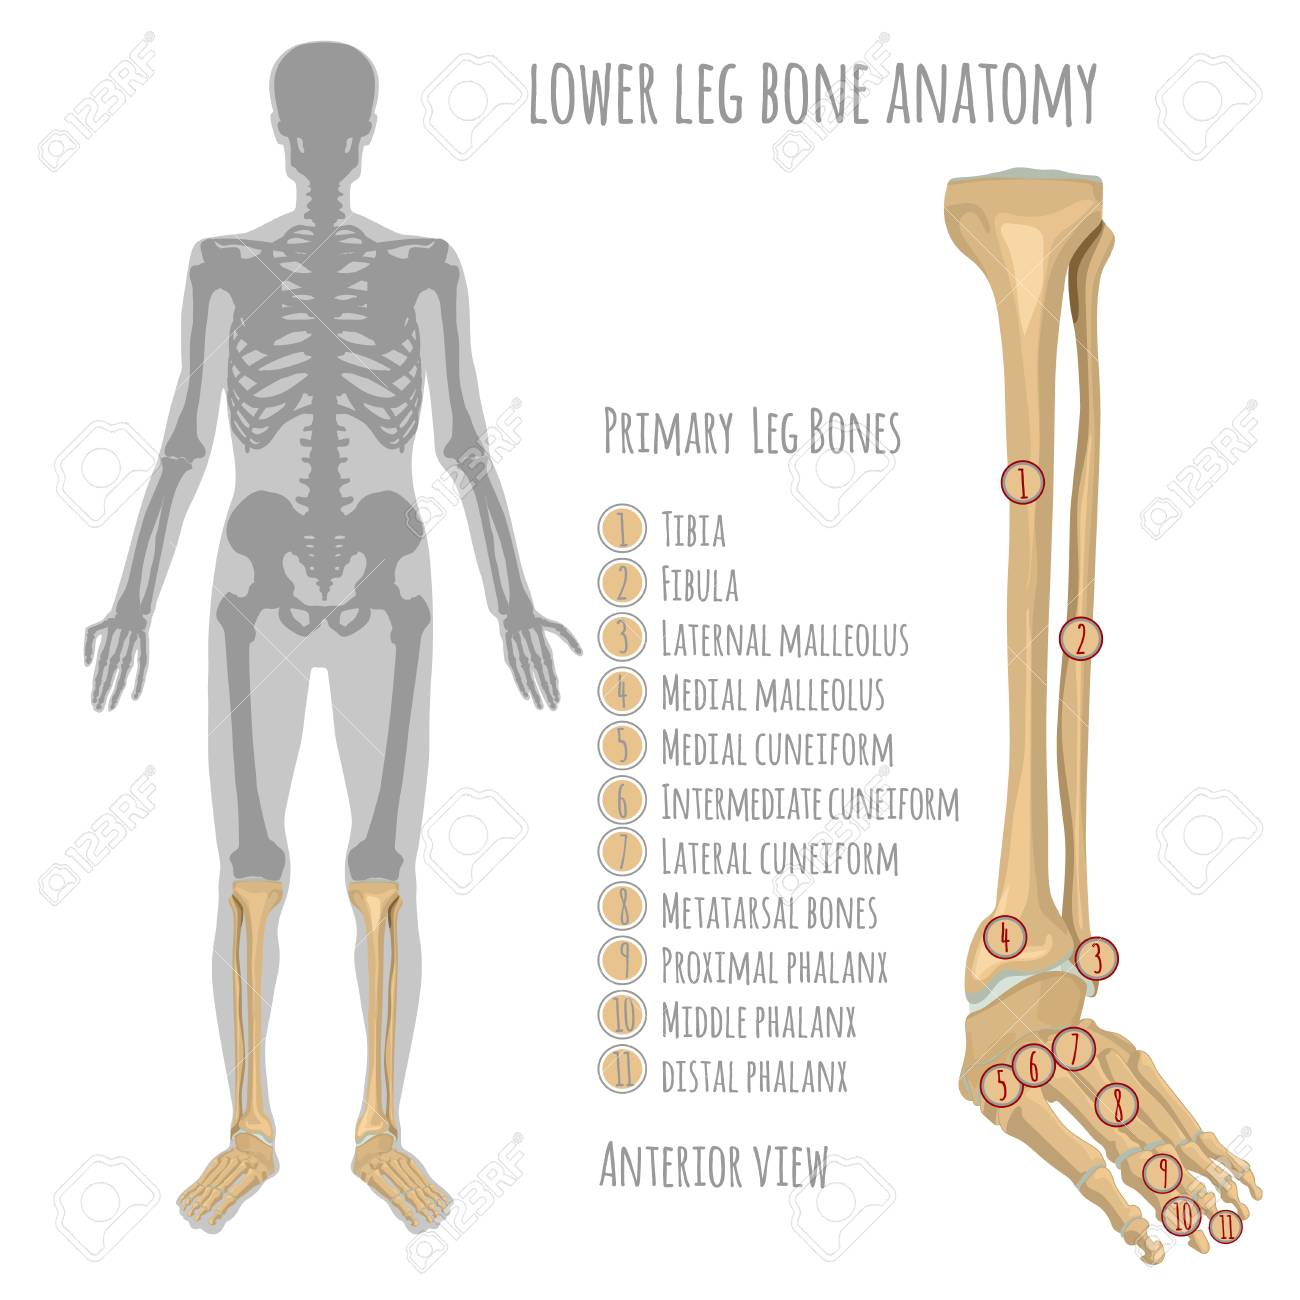 Lower Leg Bone Anatomy Anterior View With Primary Bones Names